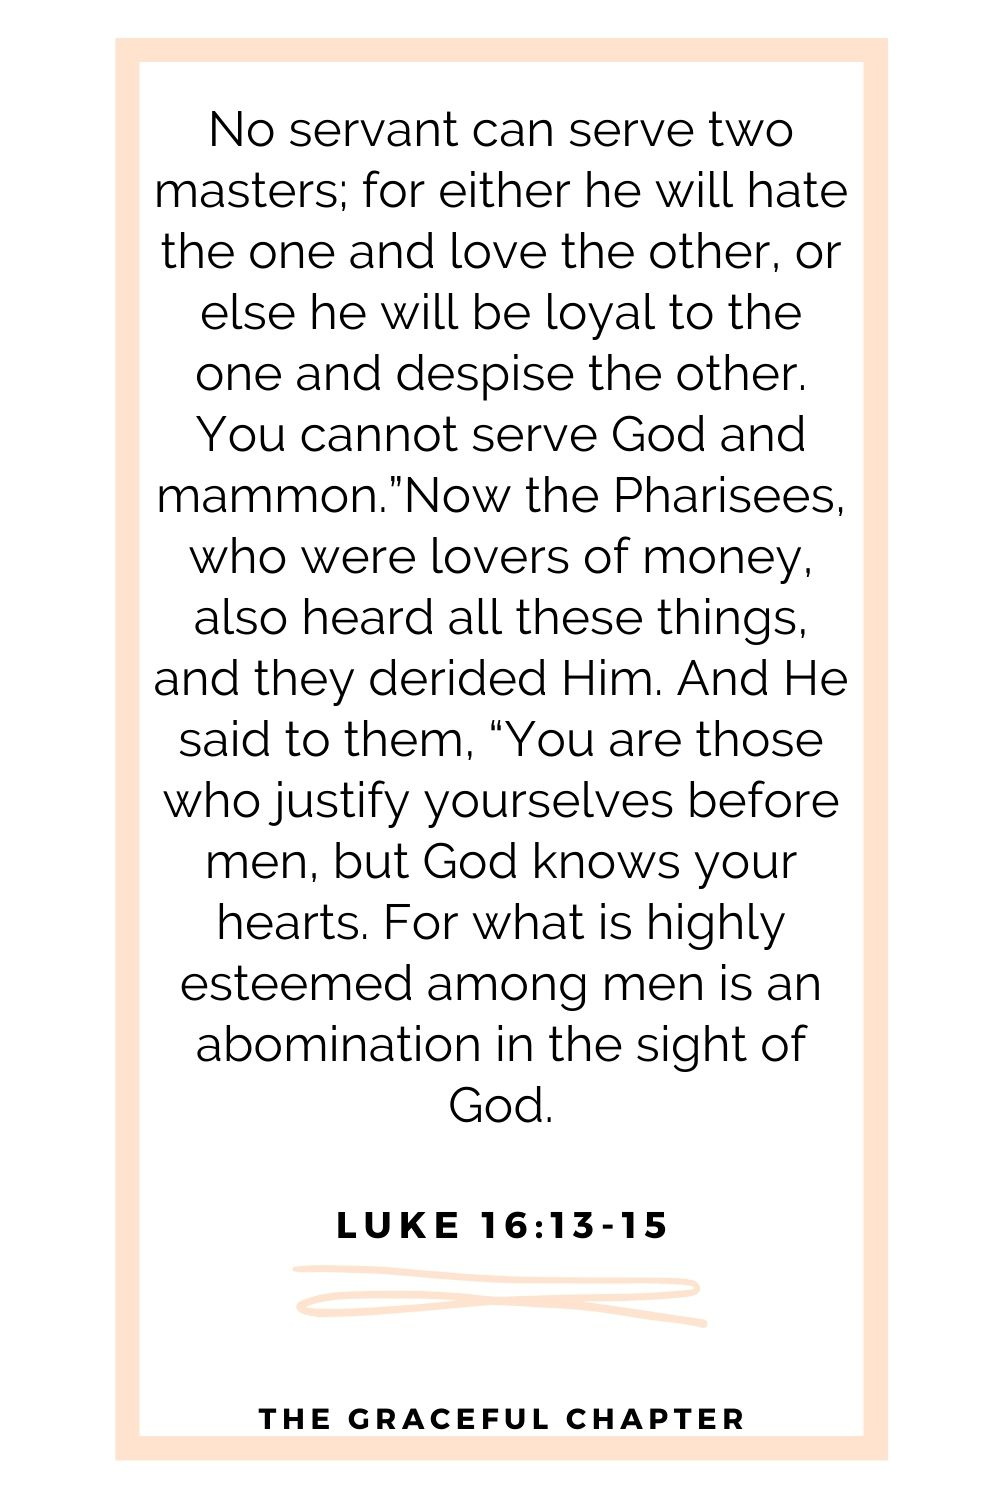 """No servant can serve two masters; for either he will hate the one and love the other, or else he will be loyal to the one and despise the other. You cannot serve God and mammon.""""Now the Pharisees, who were lovers of money, also heard all these things, and they derided Him. And He said to them, """"You are those who justify yourselves before men, but God knows your hearts. For what is highly esteemed among men is an abomination in the sight of God. Luke 16:13-15"""